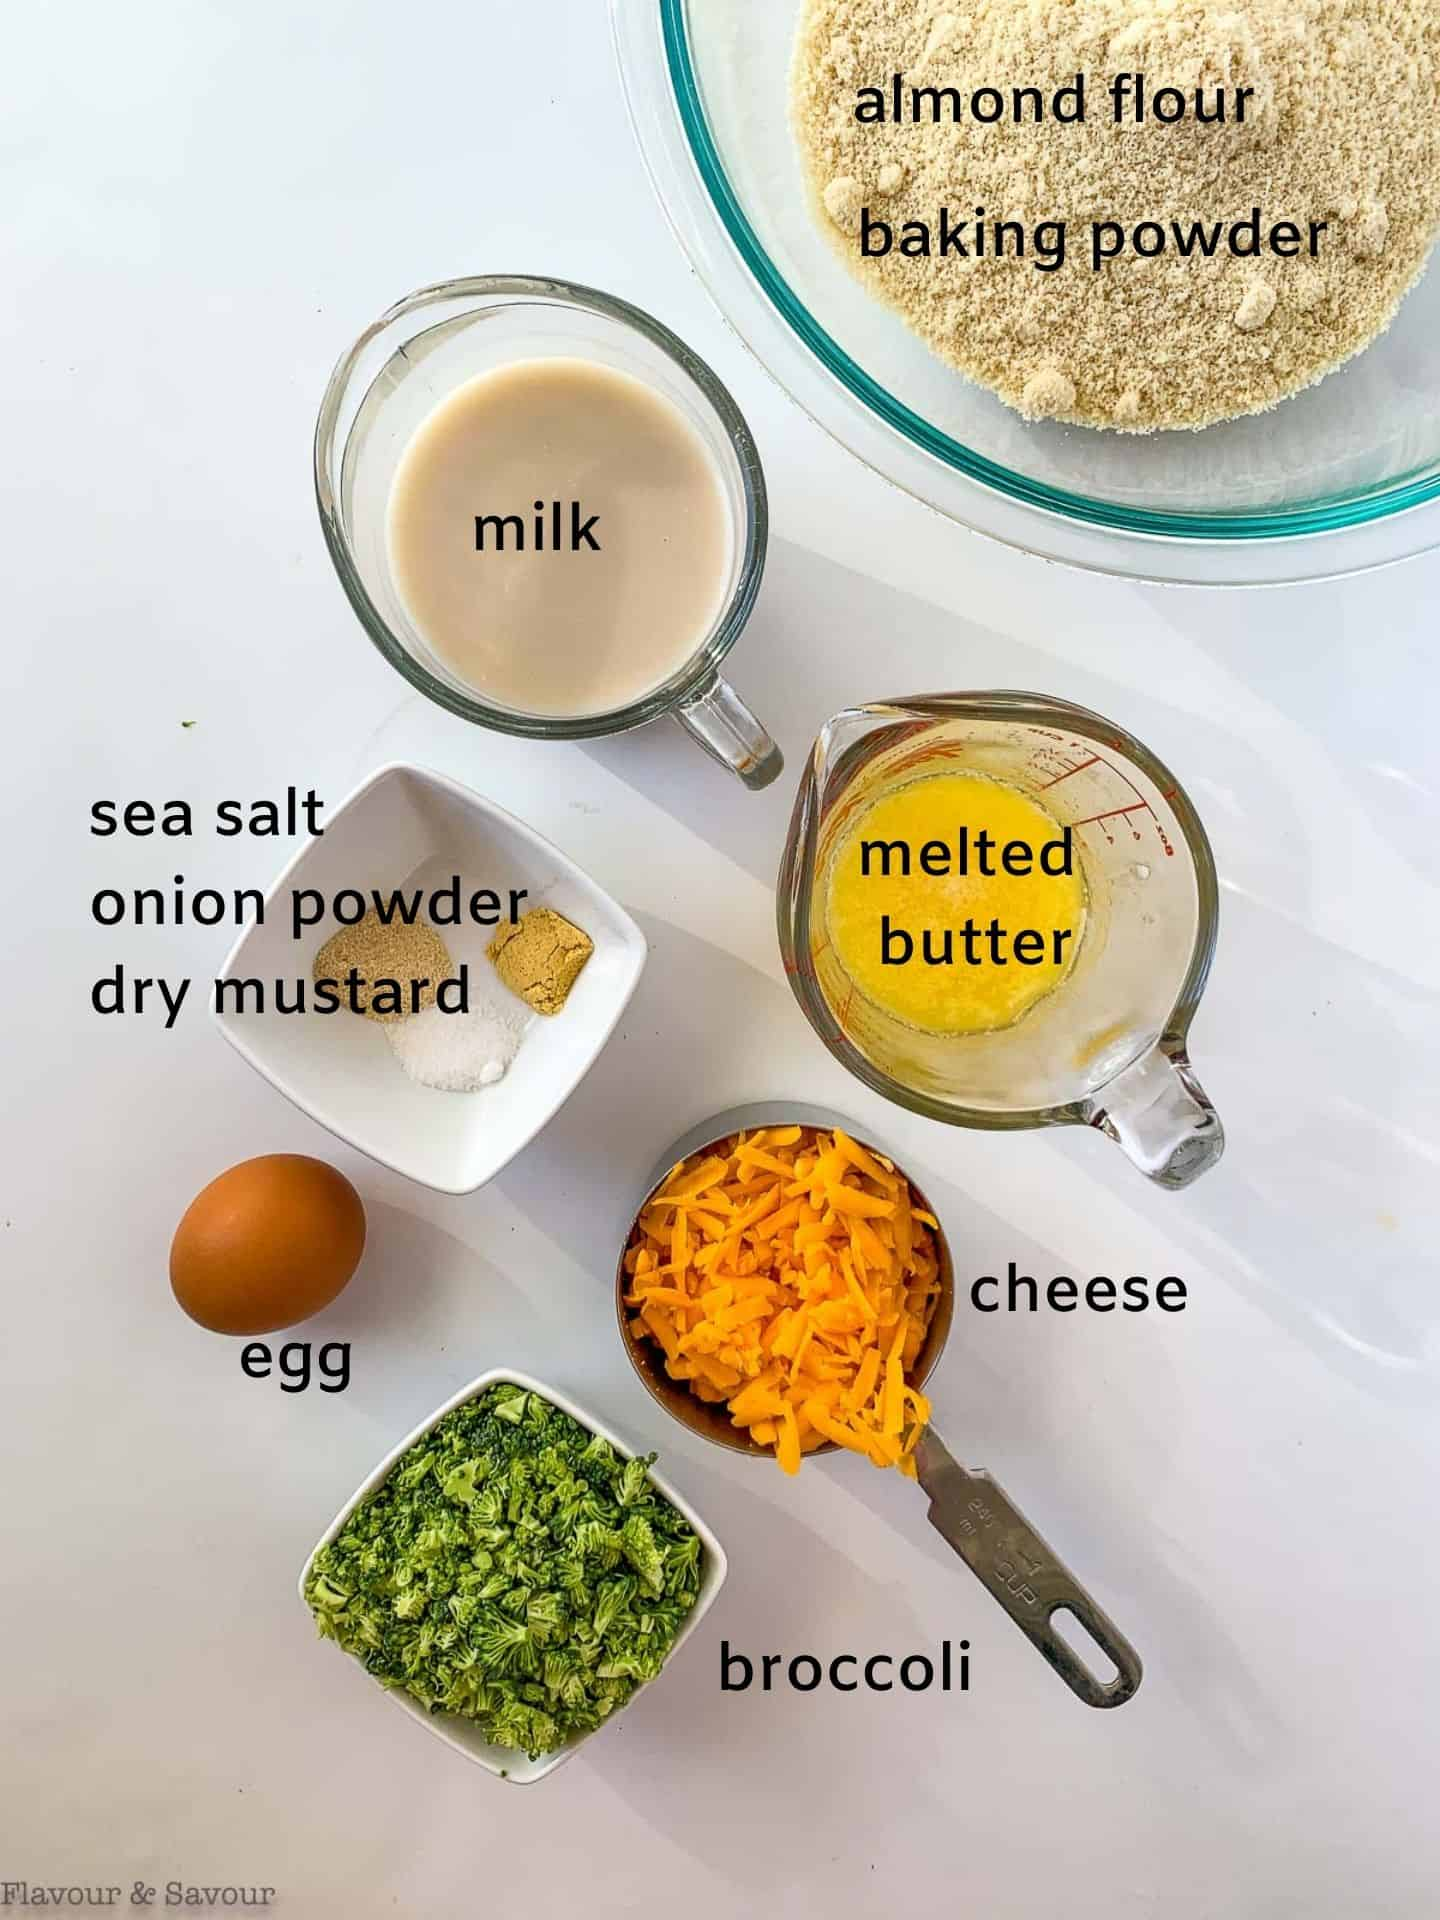 Ingredients with labels for mini gluten-free broccoli cheese muffins